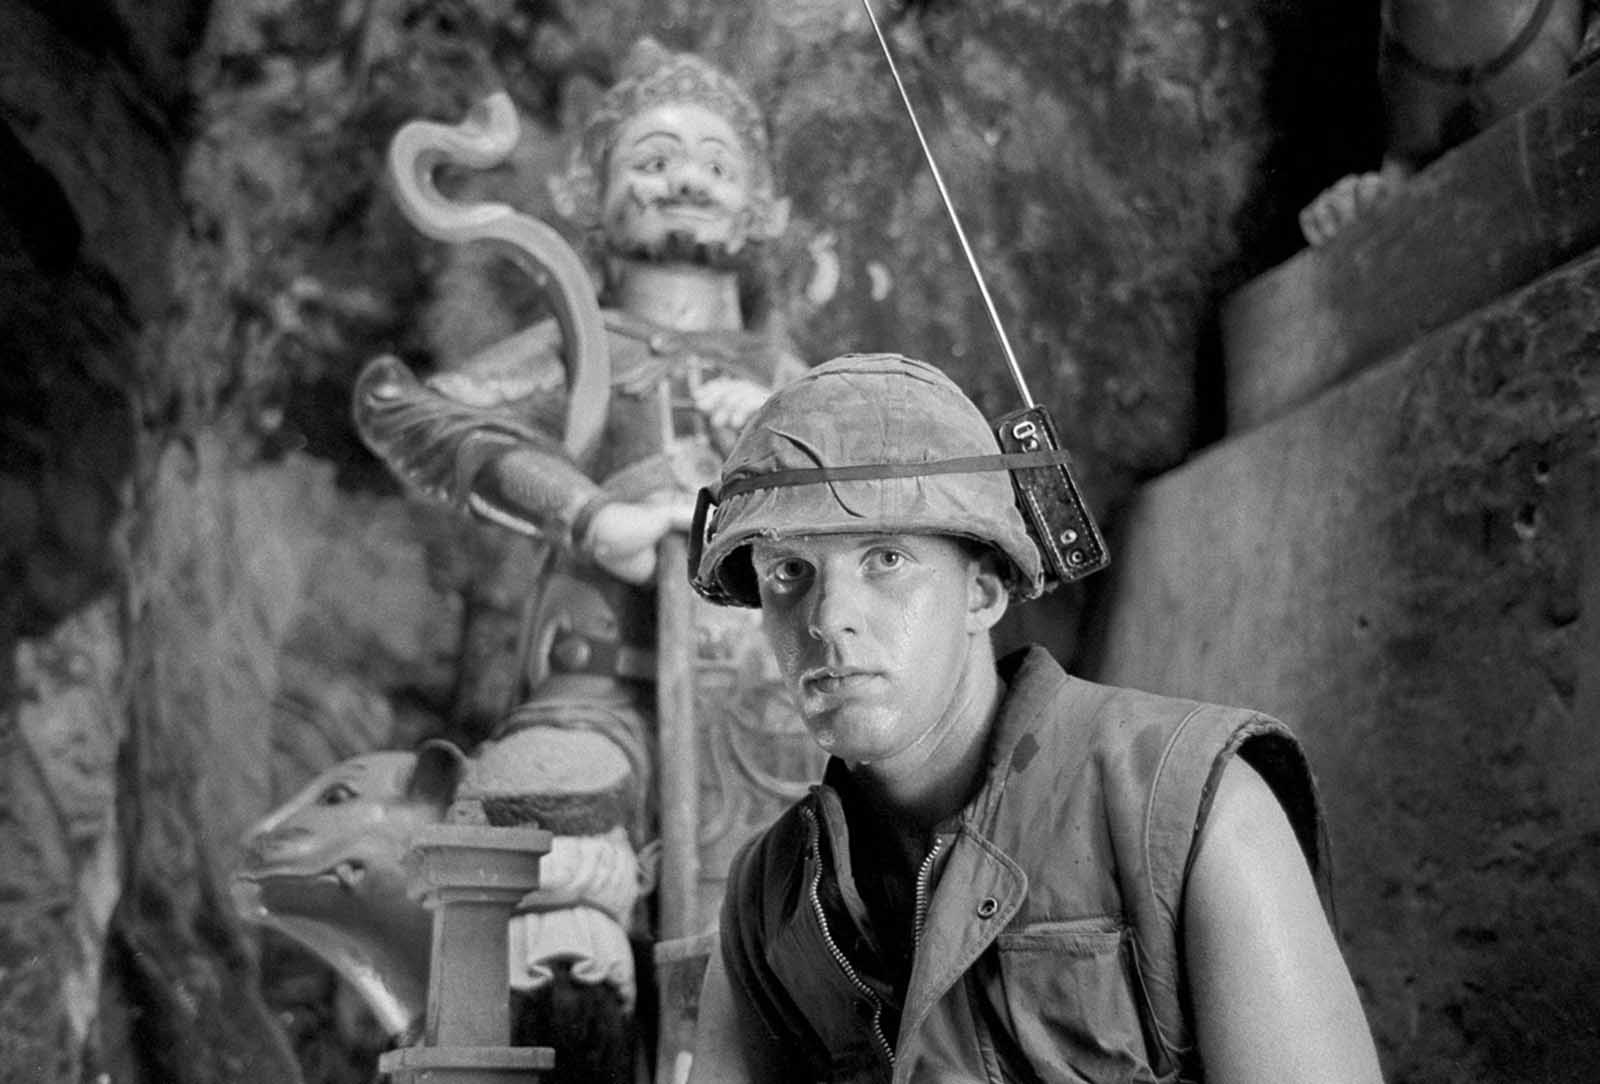 Marine Lance Corporal David L. Cruz tunes into the latest news on the Apollo moon shot on a helmet-mounted transistor radio while standing guard at Da Nang's Marble Mountain, on July 17, 1969. In background is a tall Buddhist figure found in many limestone caves of the mountain.